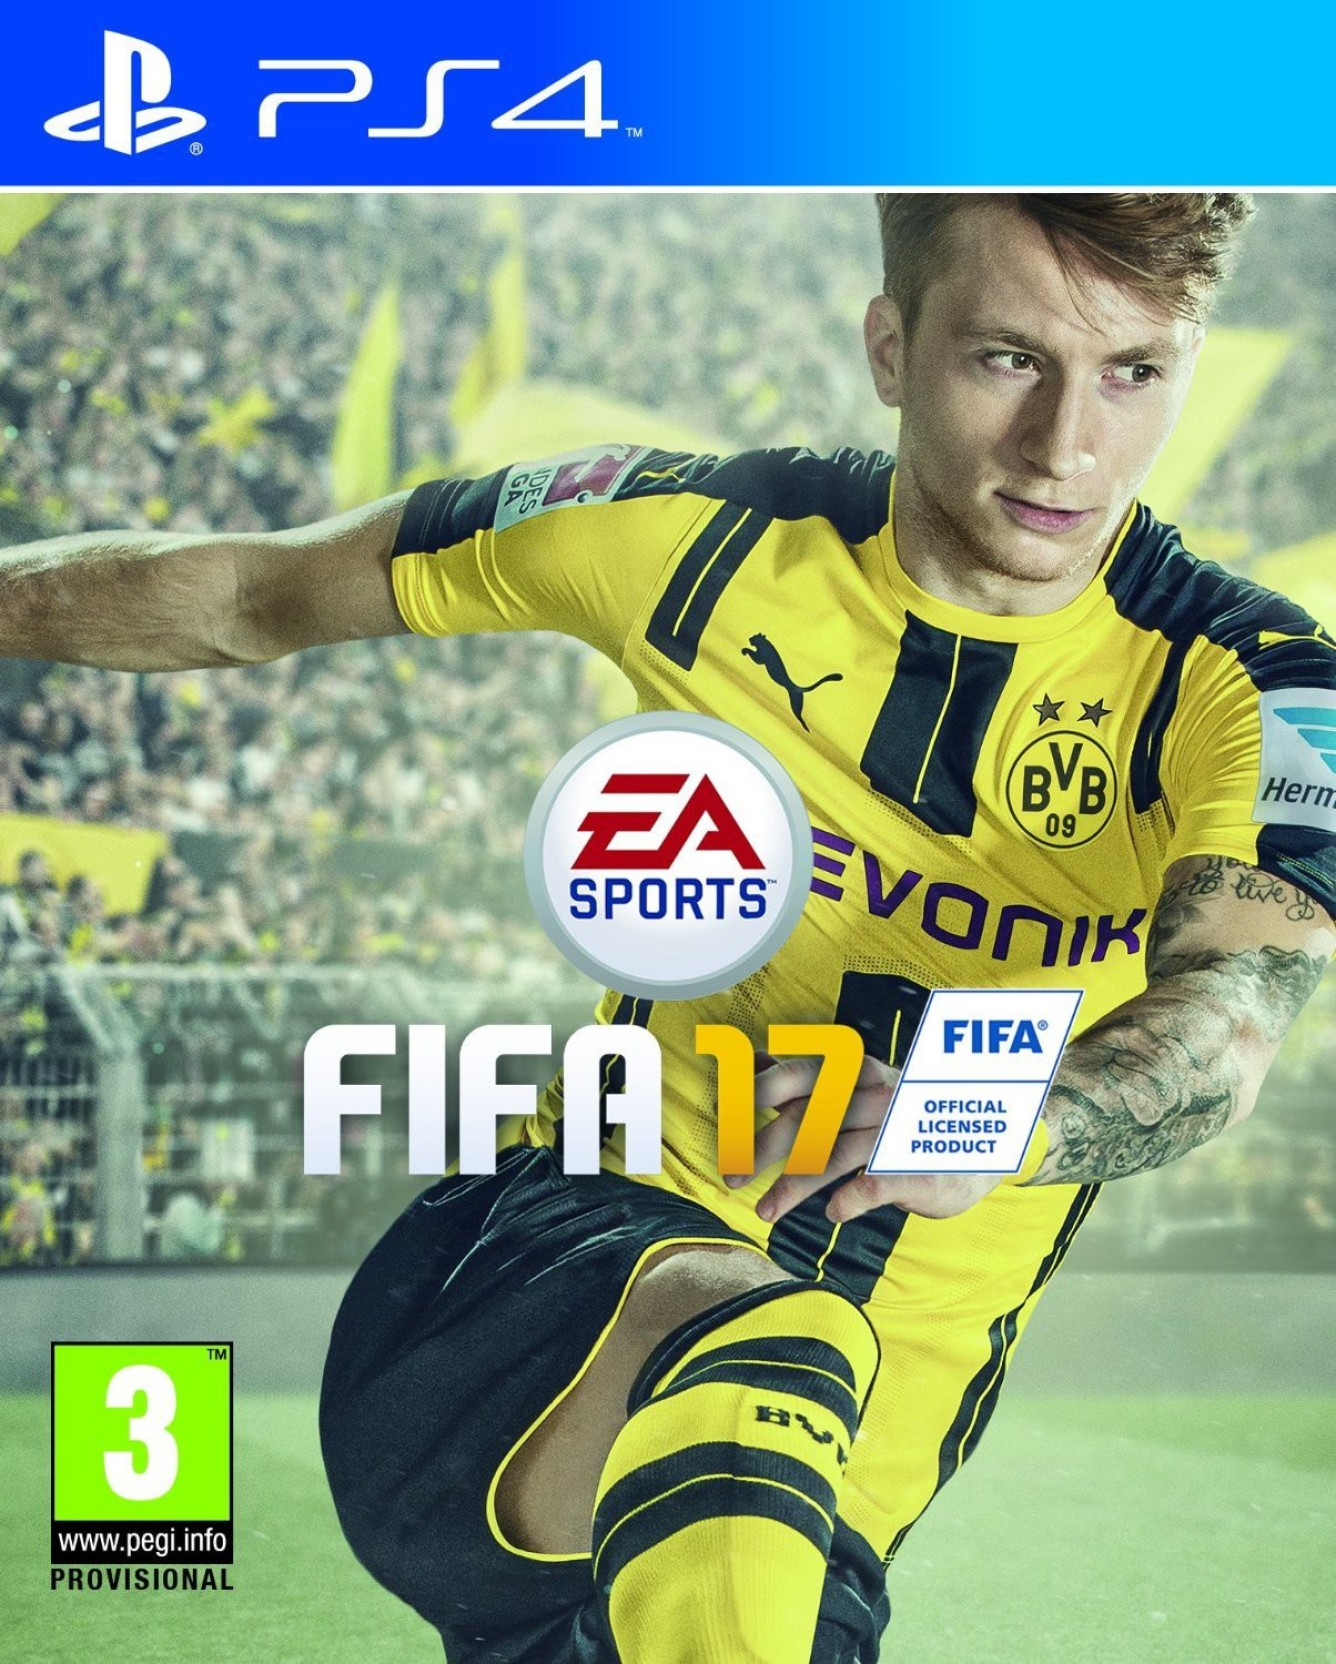 Fifa 17 Price In India Buy For Ps3 Ps4 Xbox 360 One Sony 500gb Dvd 2015 Add To Cart